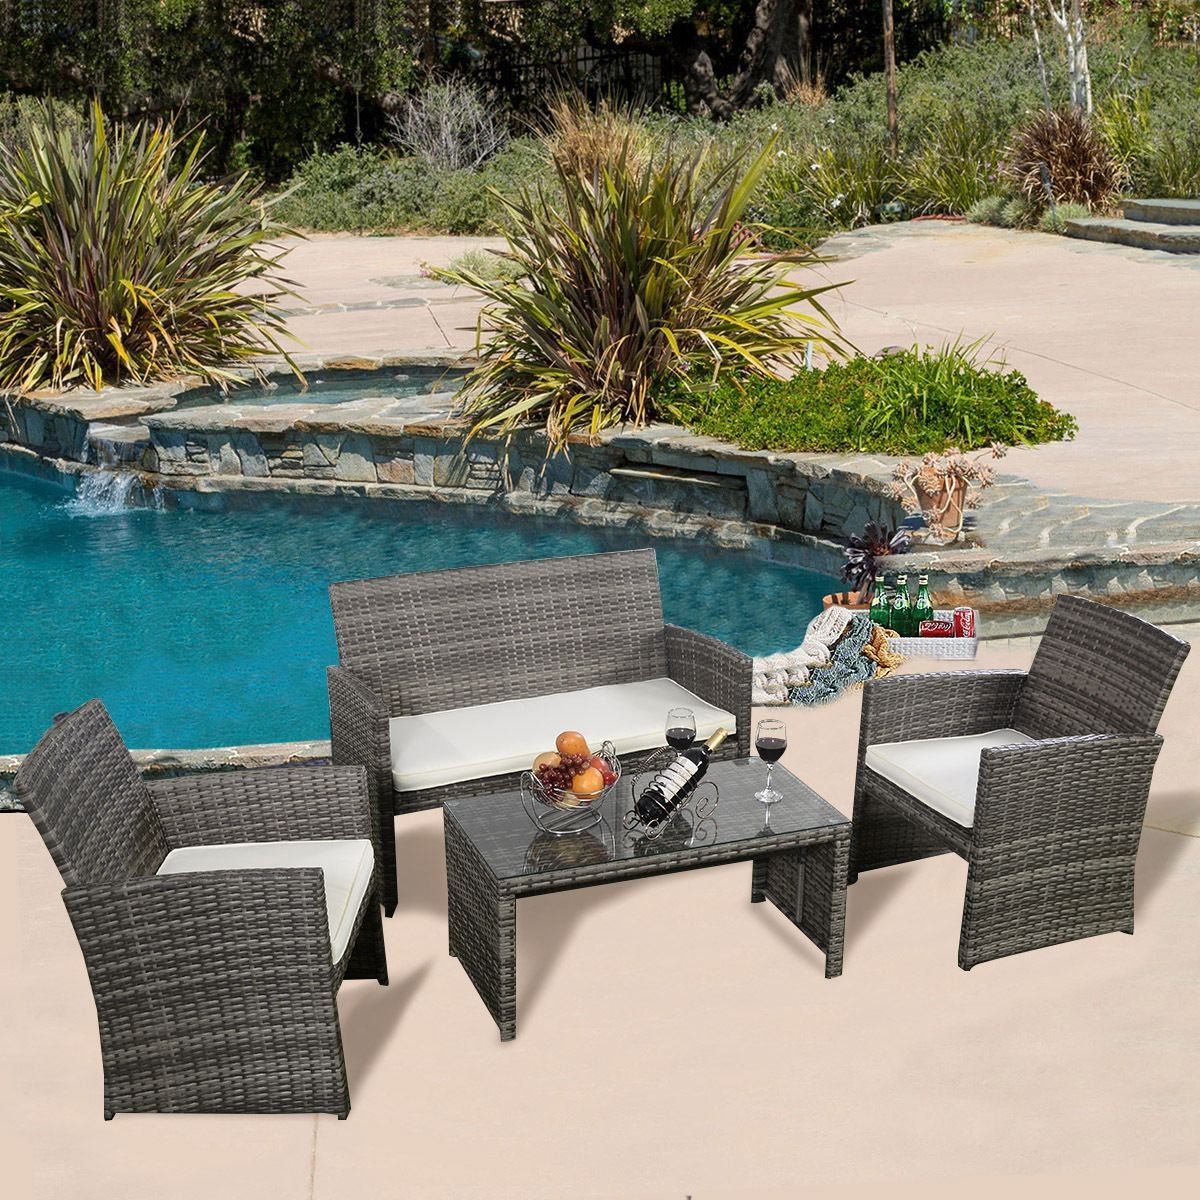 Amazon.com : 4 Pc Rattan Patio Furniture Set Garden Lawn Sofa Cushioned  Seat Mix Gray Wicker : Garden U0026 Outdoor